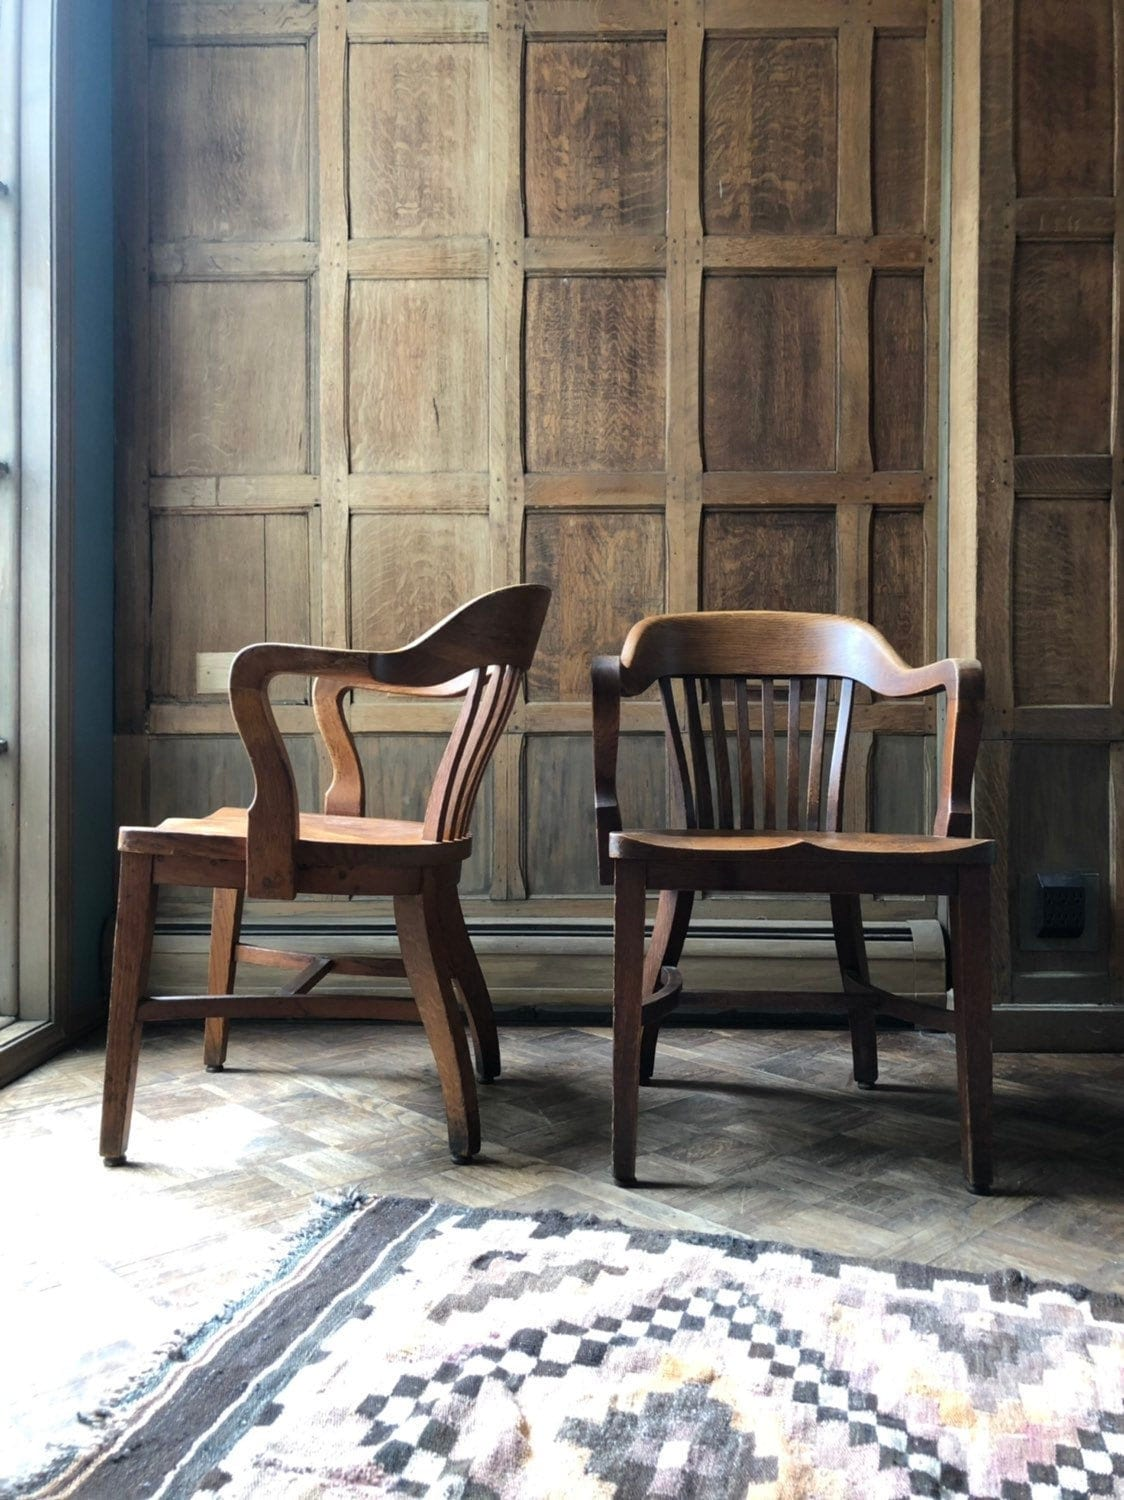 Wondrous Pair Of Oak Library Chairs Vintage Bankers Chair Antique Dailytribune Chair Design For Home Dailytribuneorg